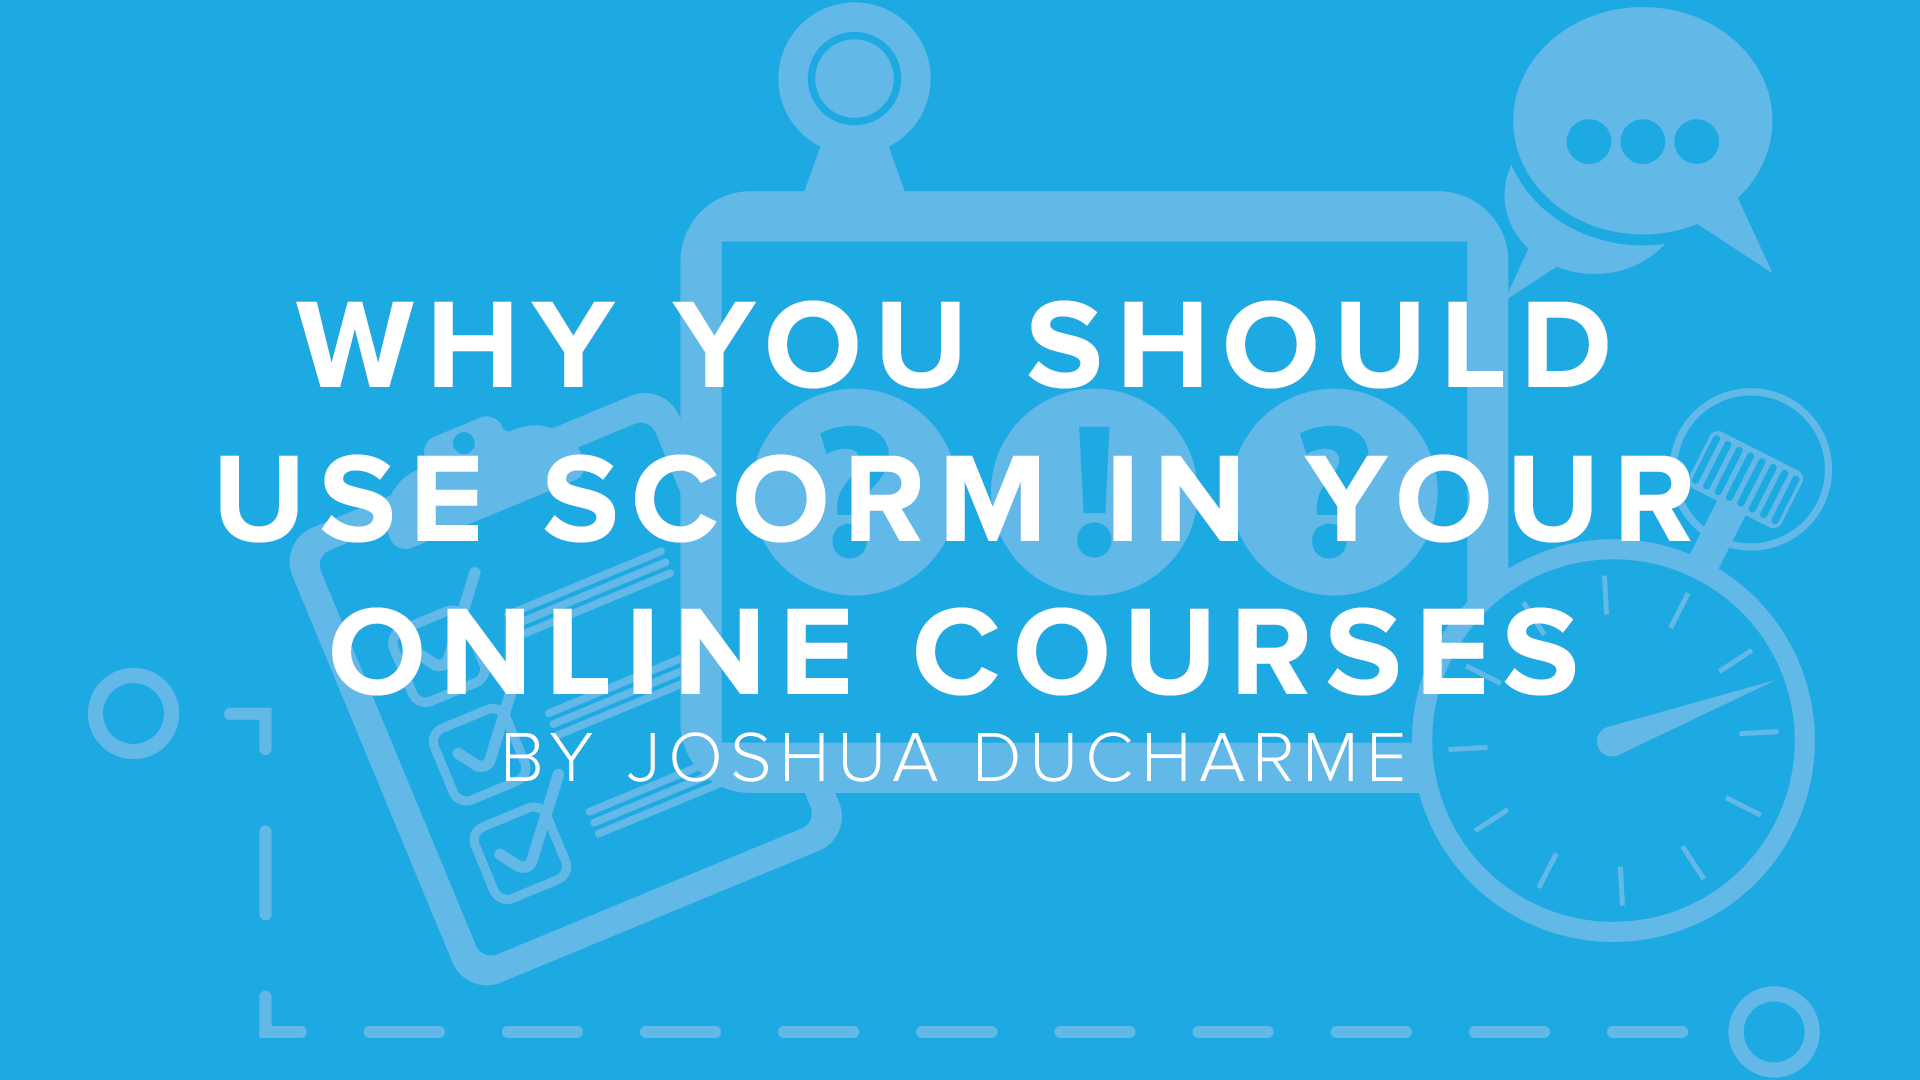 Why You Should Use SCORM in Your Online Courses | DigitalChalk Blog thumbnail